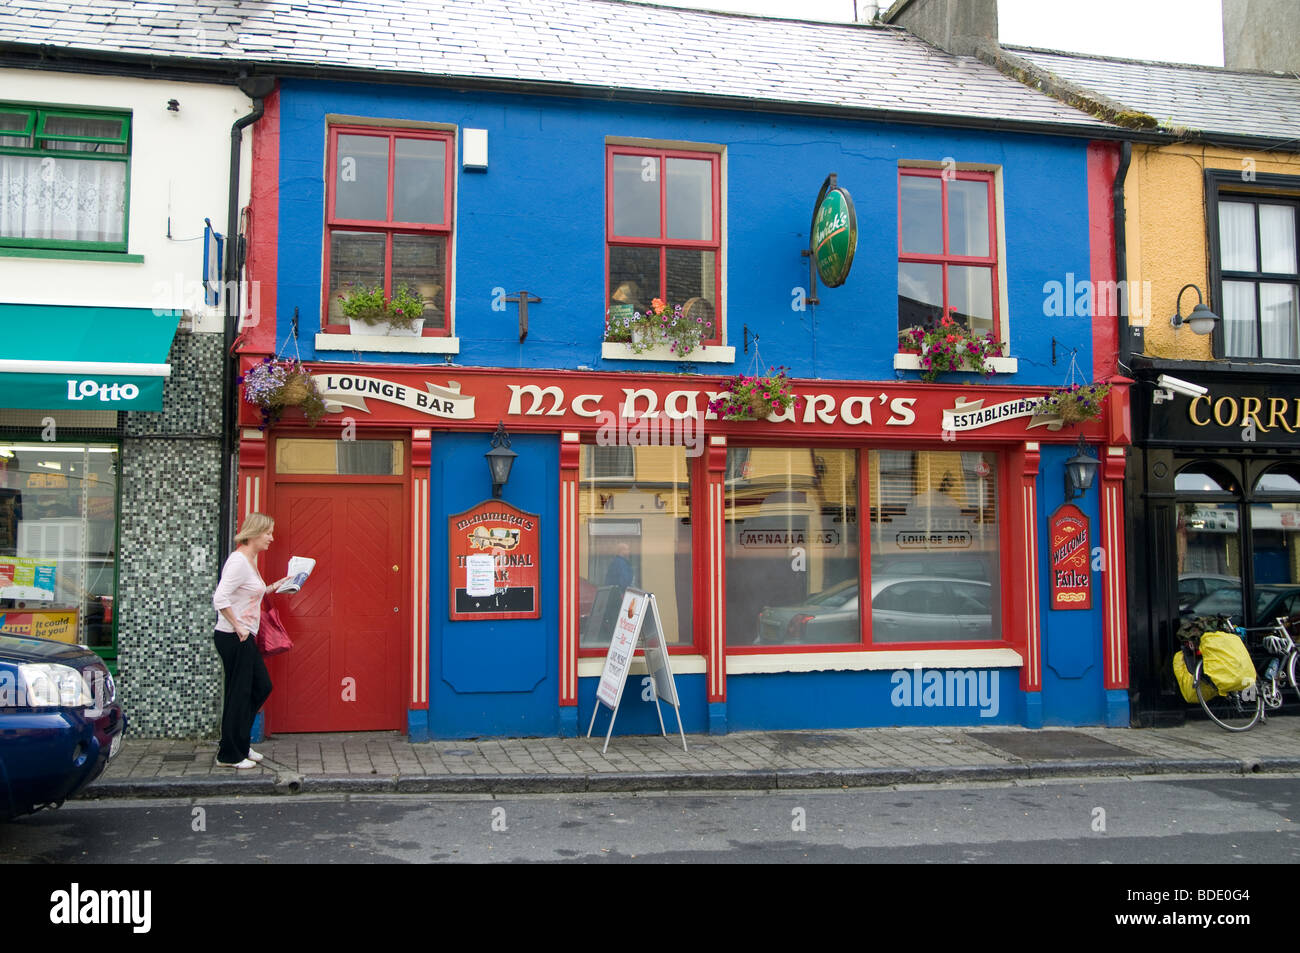 A colorfully decorated pub in the village of Louisburgh, county Mayo, Ireland - Stock Image